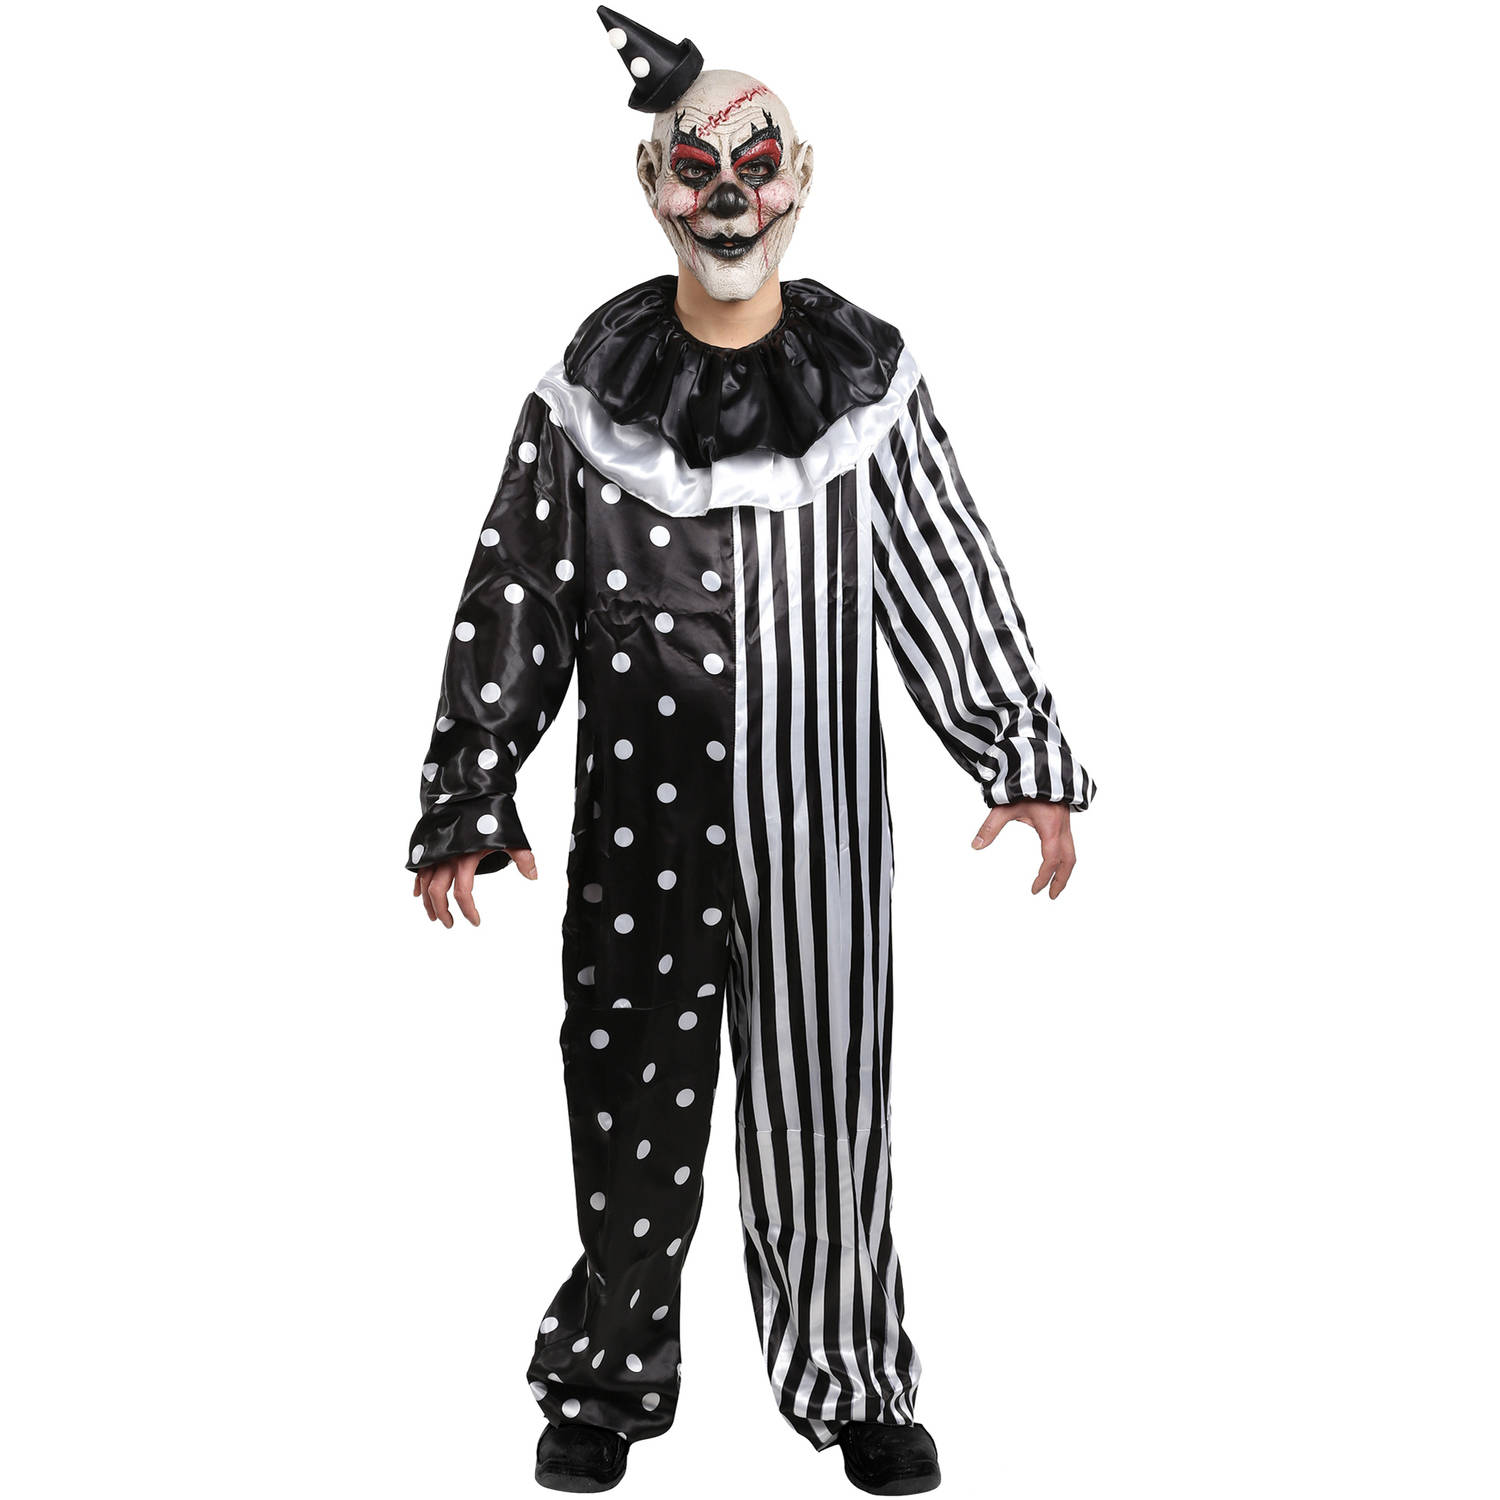 Killer Clown Halloween Costumes For Girls.Kill Joy Clown Costume Adult Halloween Costume